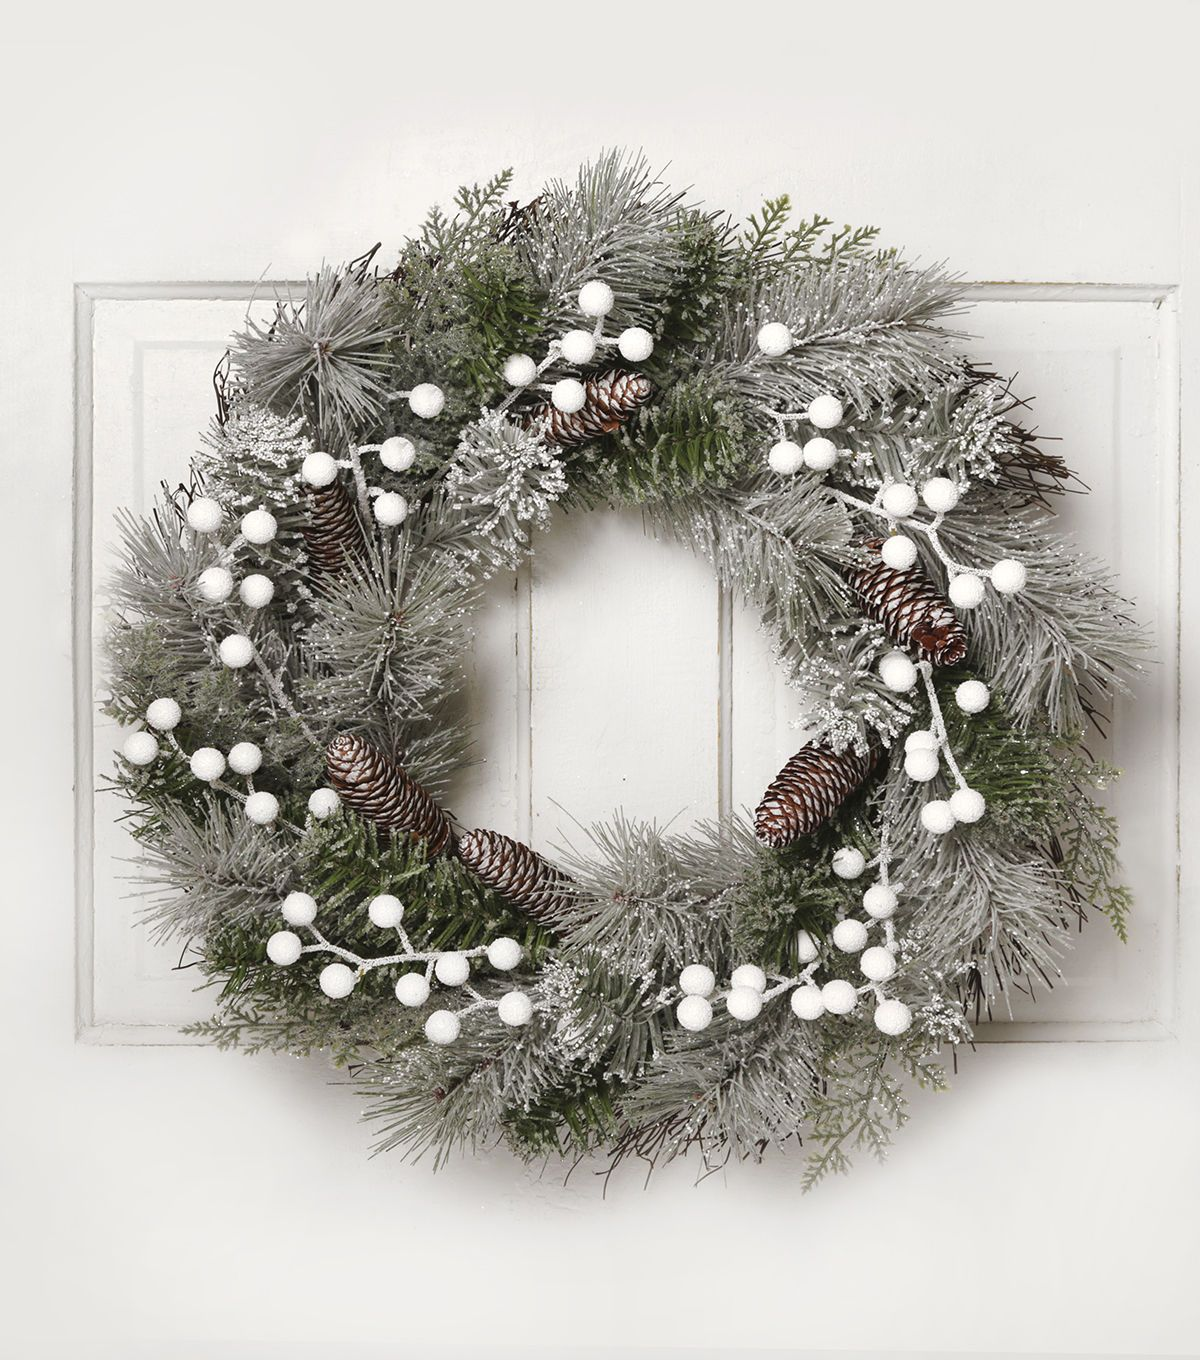 Blooming Holiday 22'' Berry & Snowed Pine Wreath-White